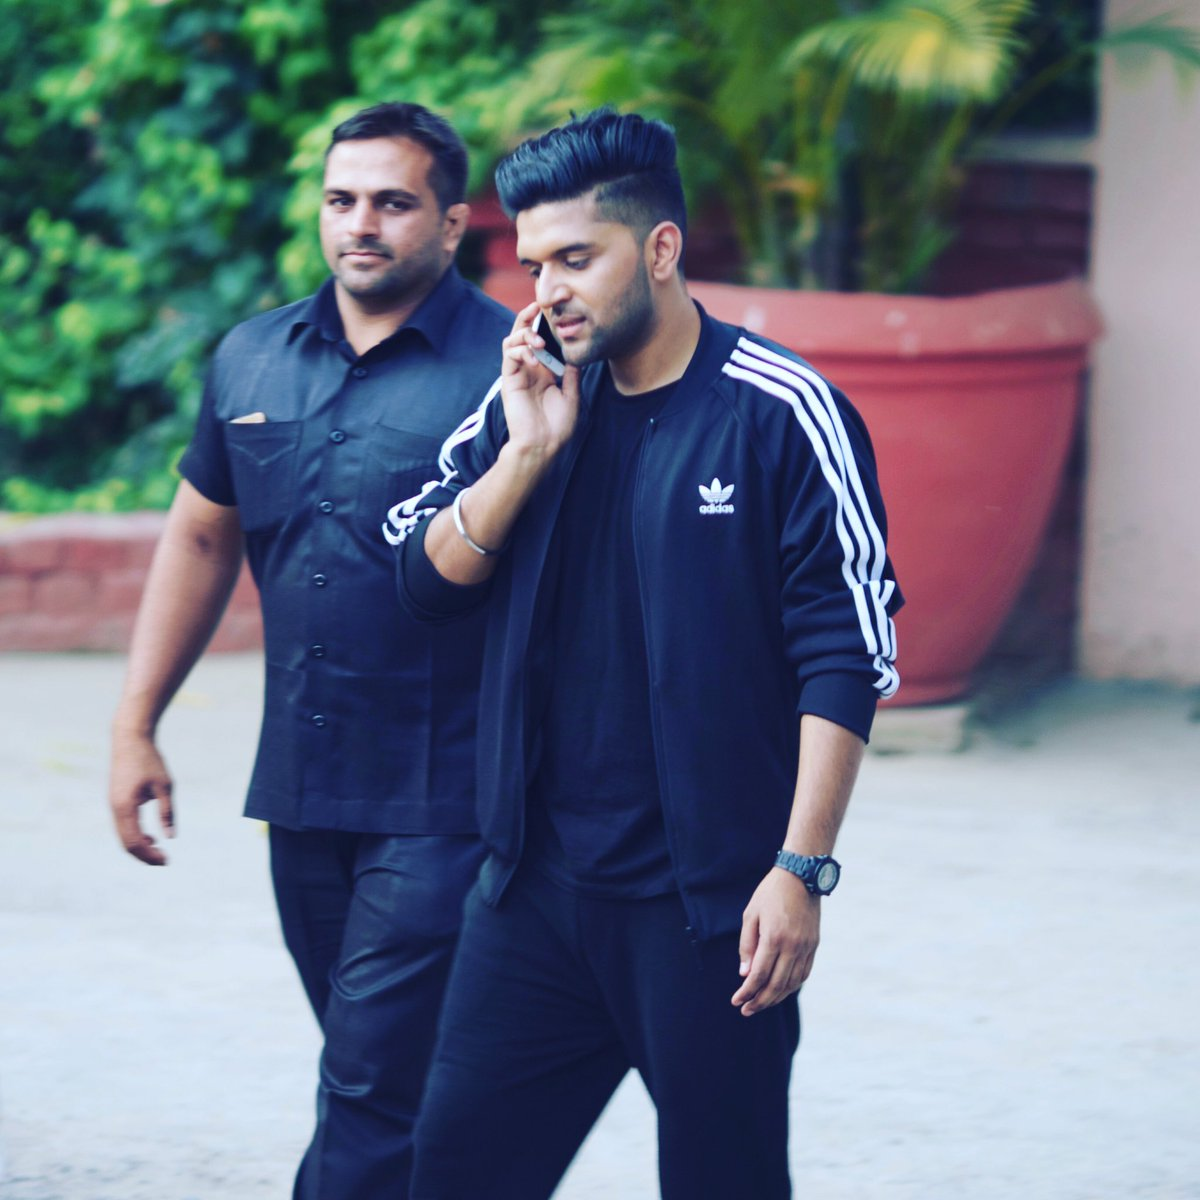 official guru randhawa singer contact 91 701671 2 guru randhawa contact address phone number email id website for event booking enquiry celebrity